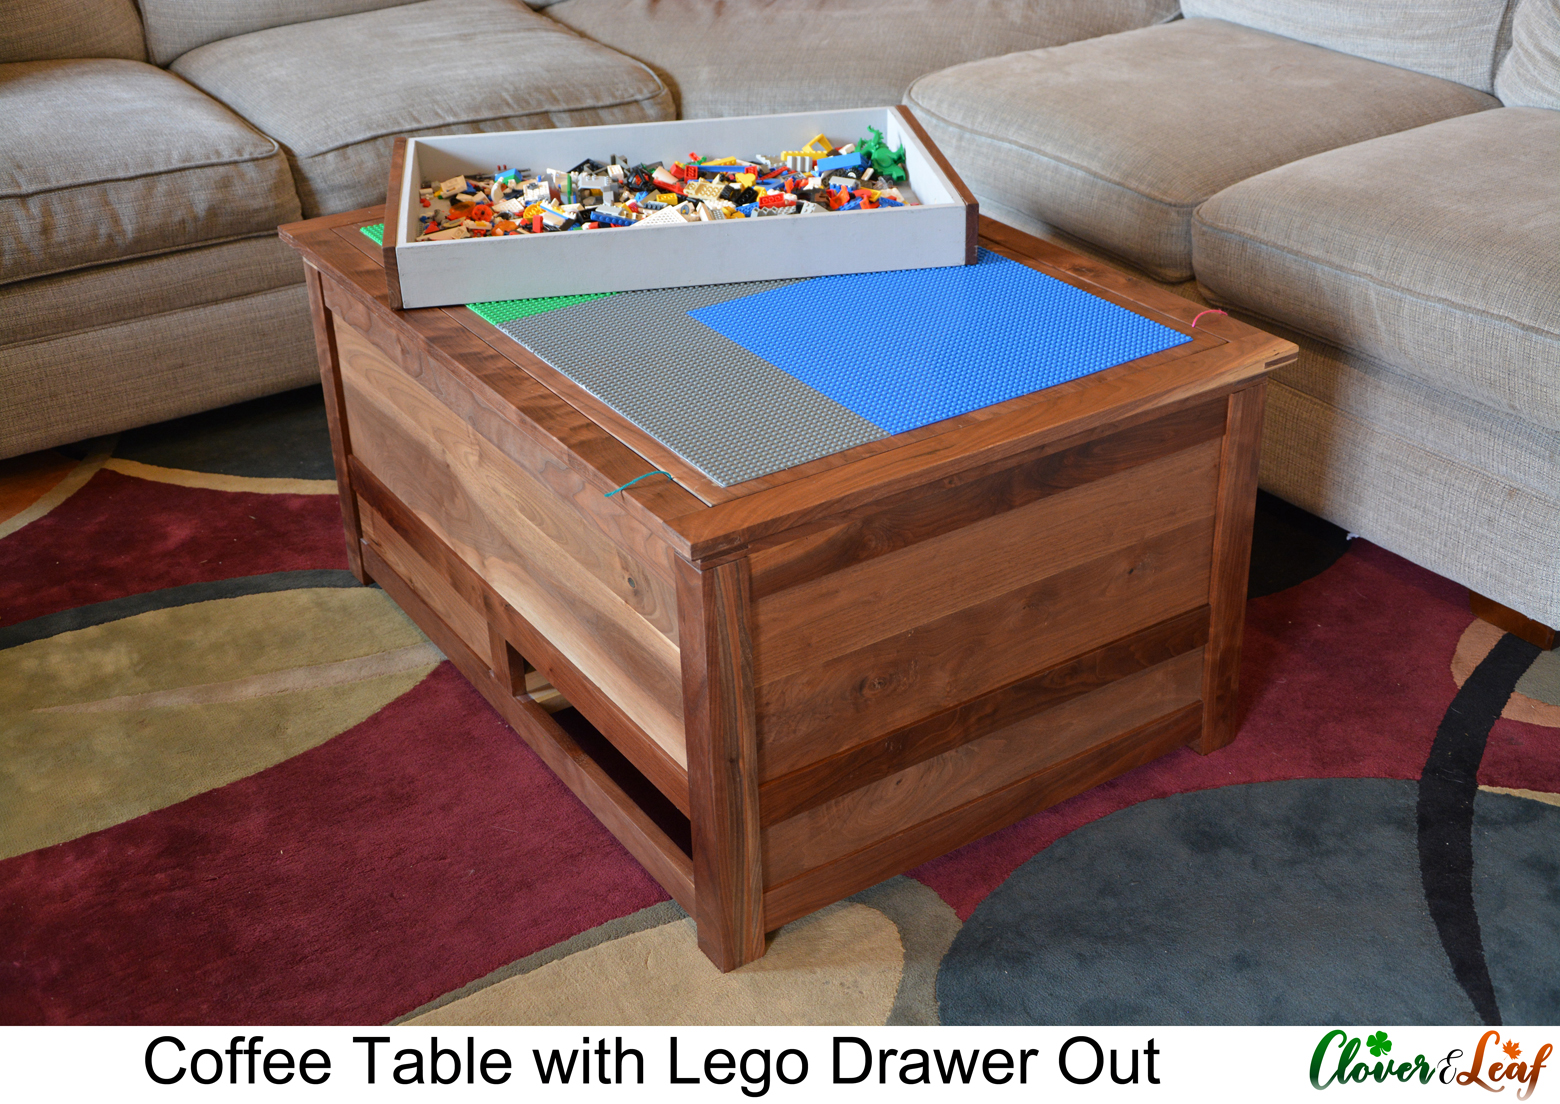 Coffee Table with Lego Drawer Out.jpg